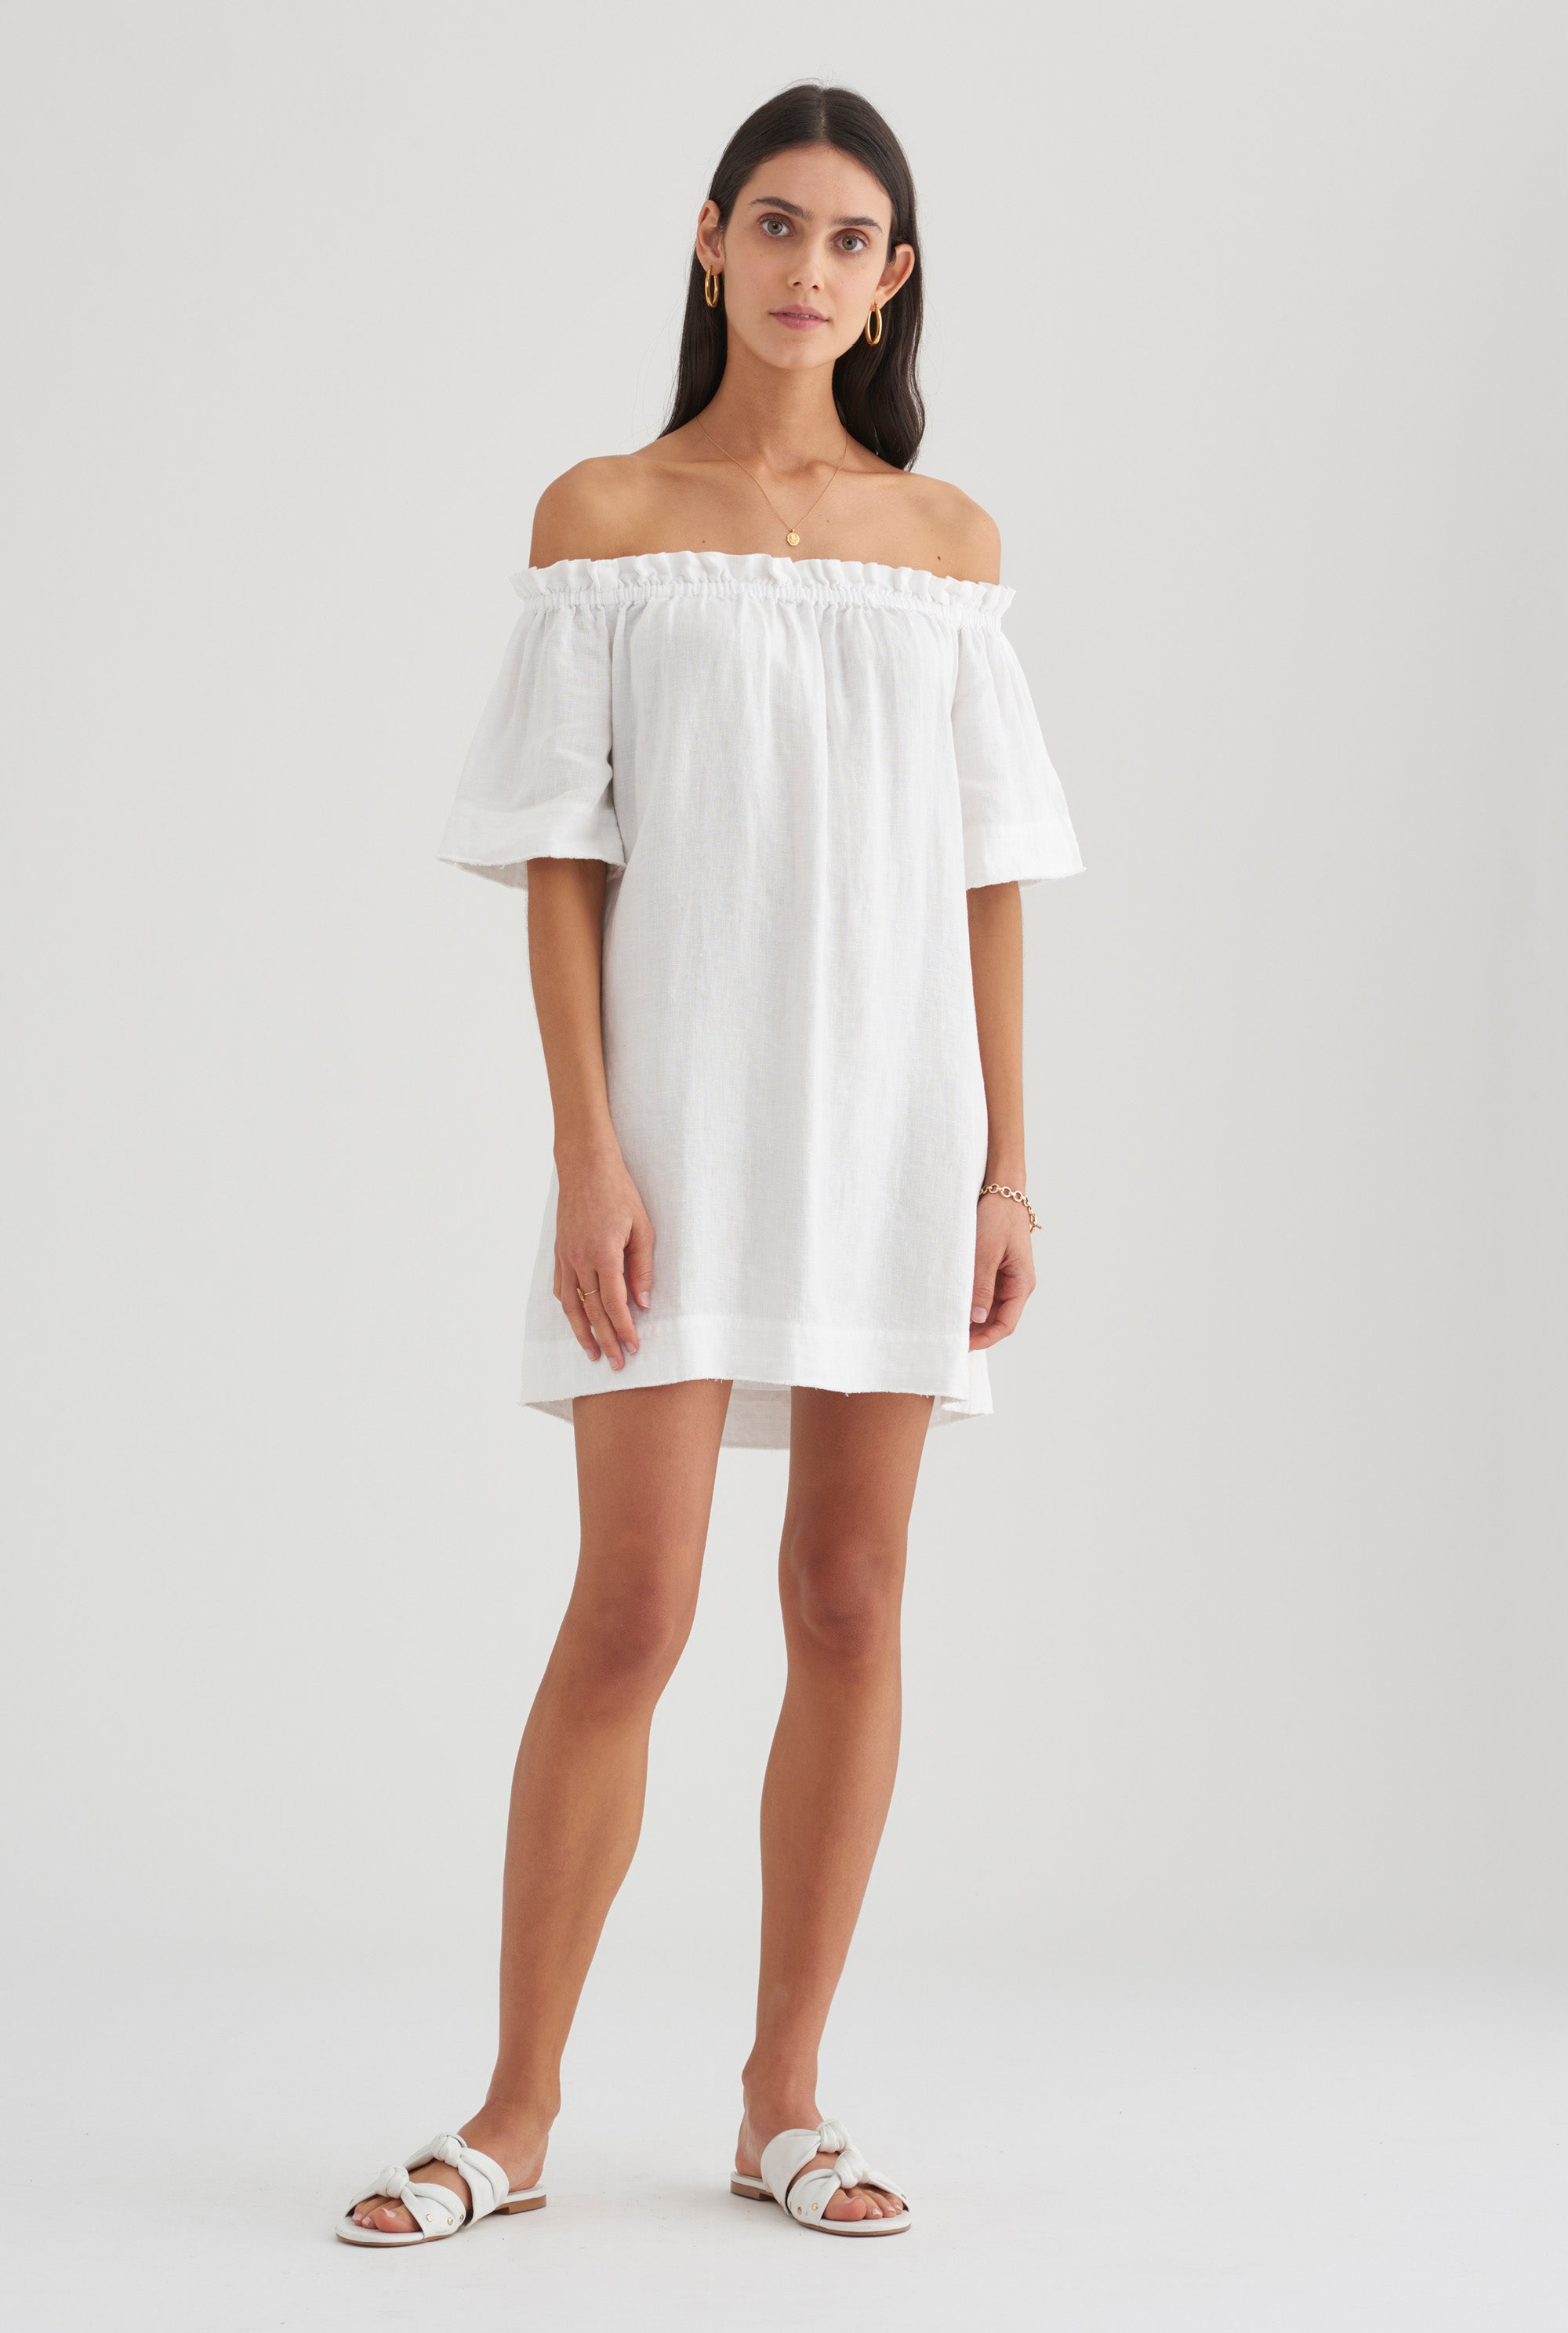 Tie Shoulder Mini Dress - White